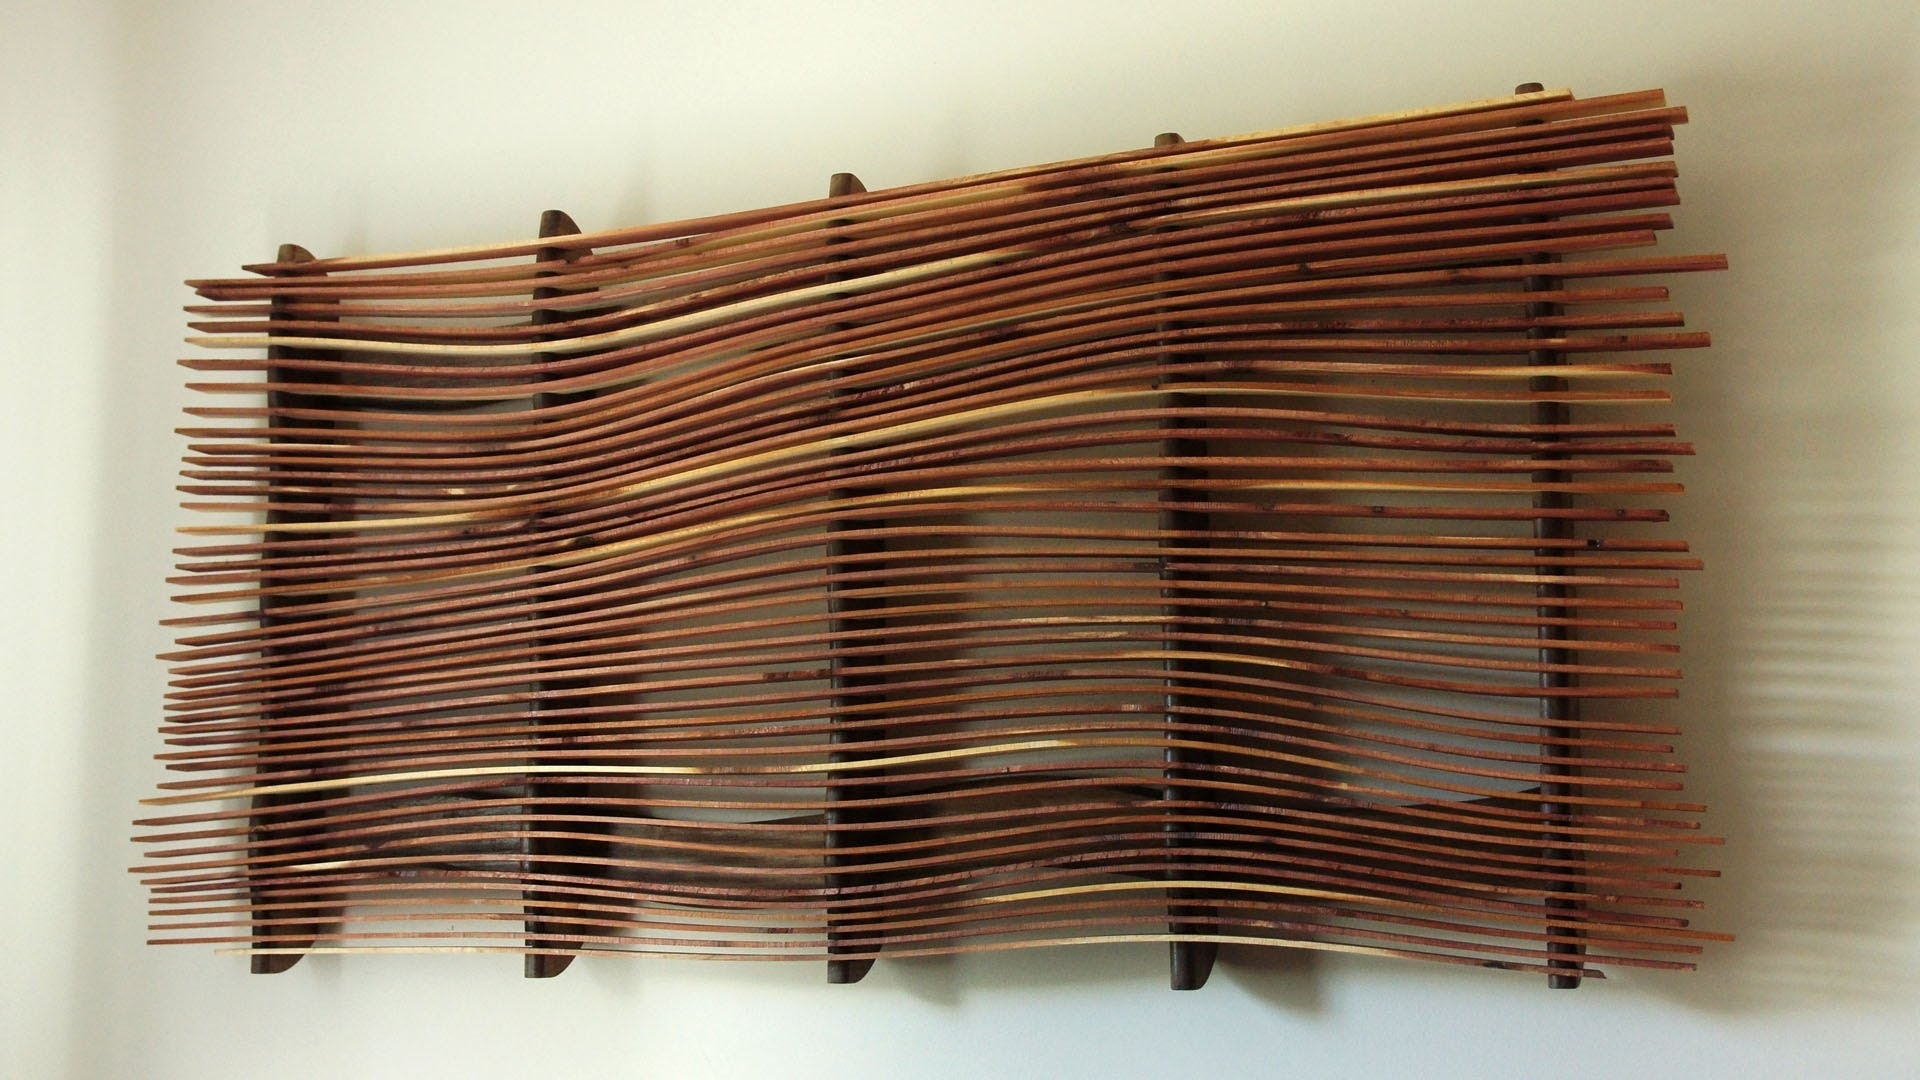 Wall Art From Scrap Wood – Youtube With Most Up To Date Wood Art Wall (Gallery 2 of 15)